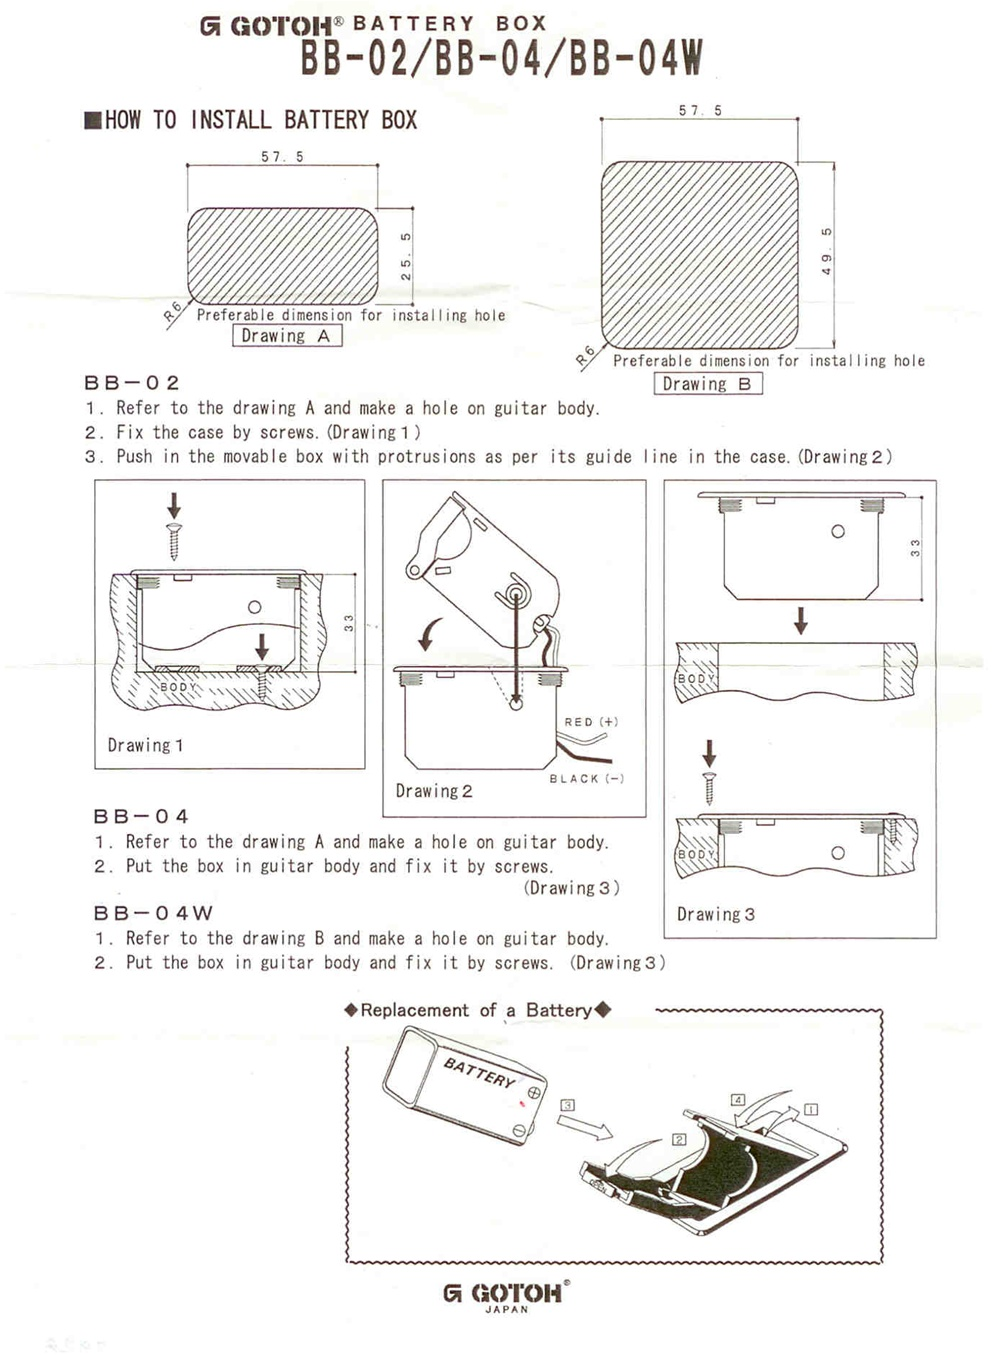 Bb 04 Gotoh Deluxe 9v Battery Compartment Wiring Box Full Data Sheet